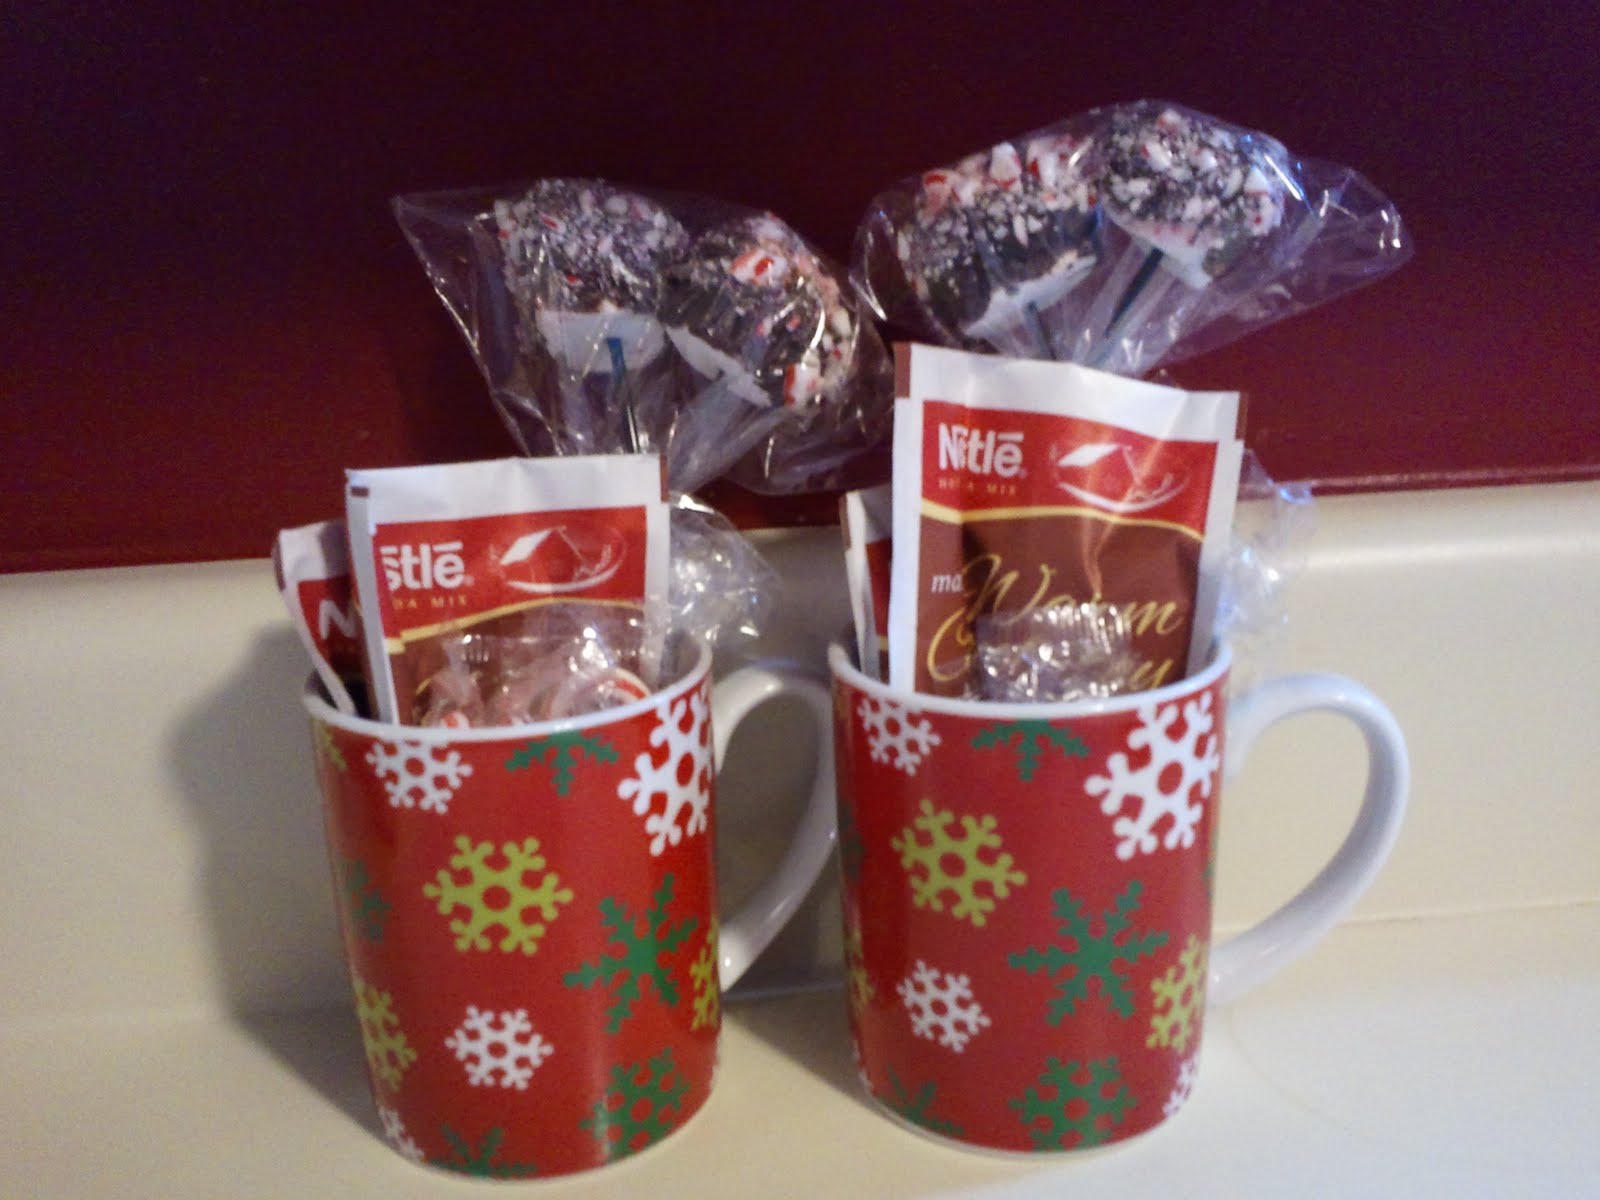 Christmas cocoa gift ideas